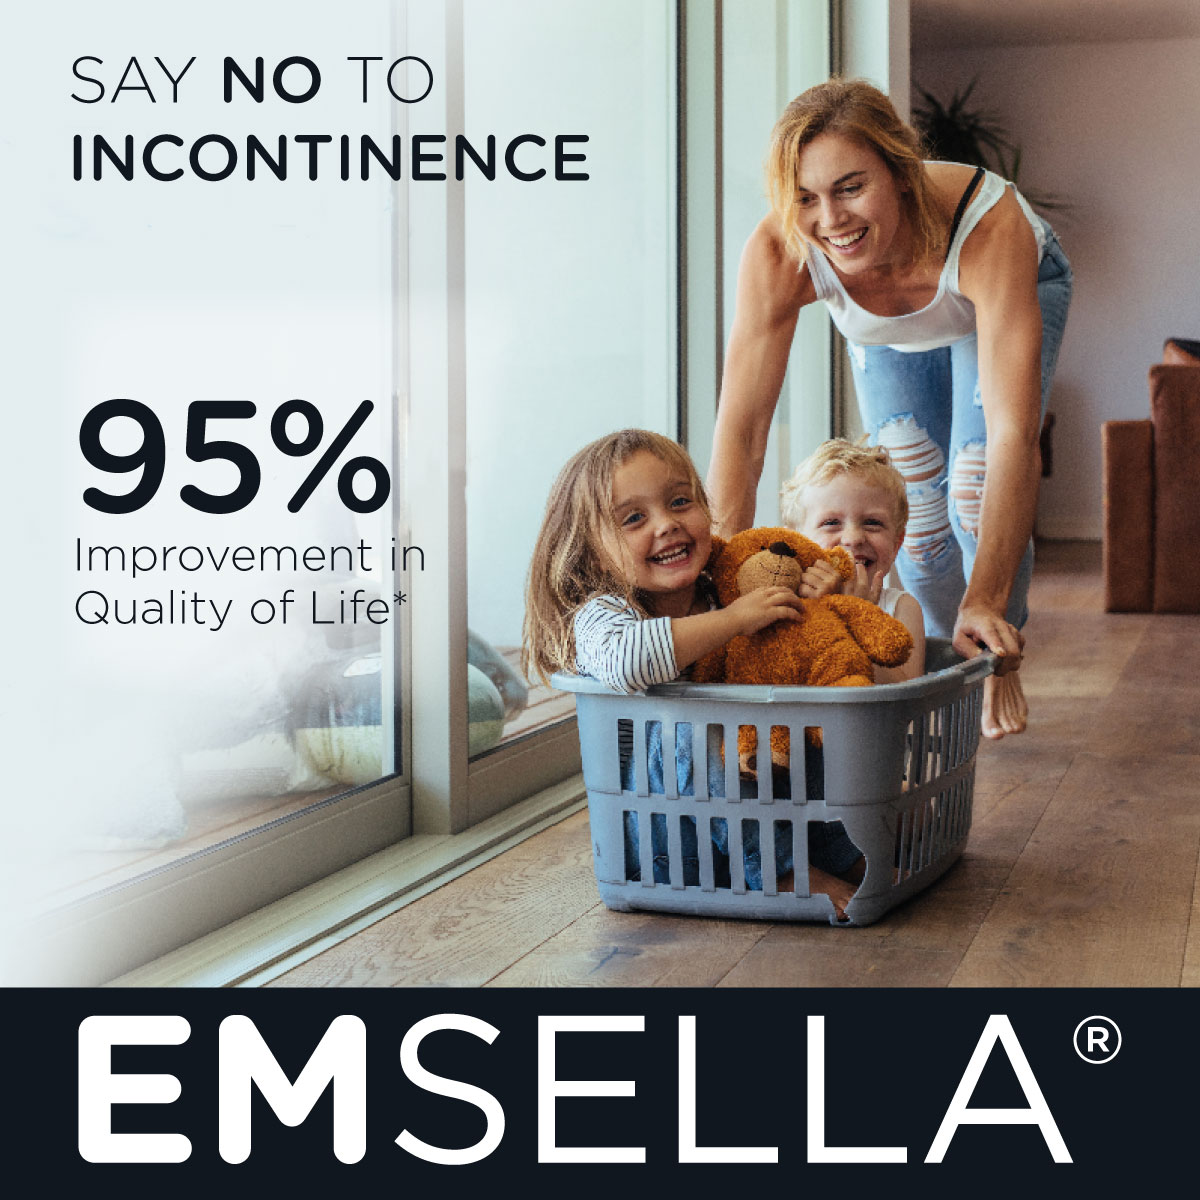 EMSE::A Treatment for Incontinence and Confidence